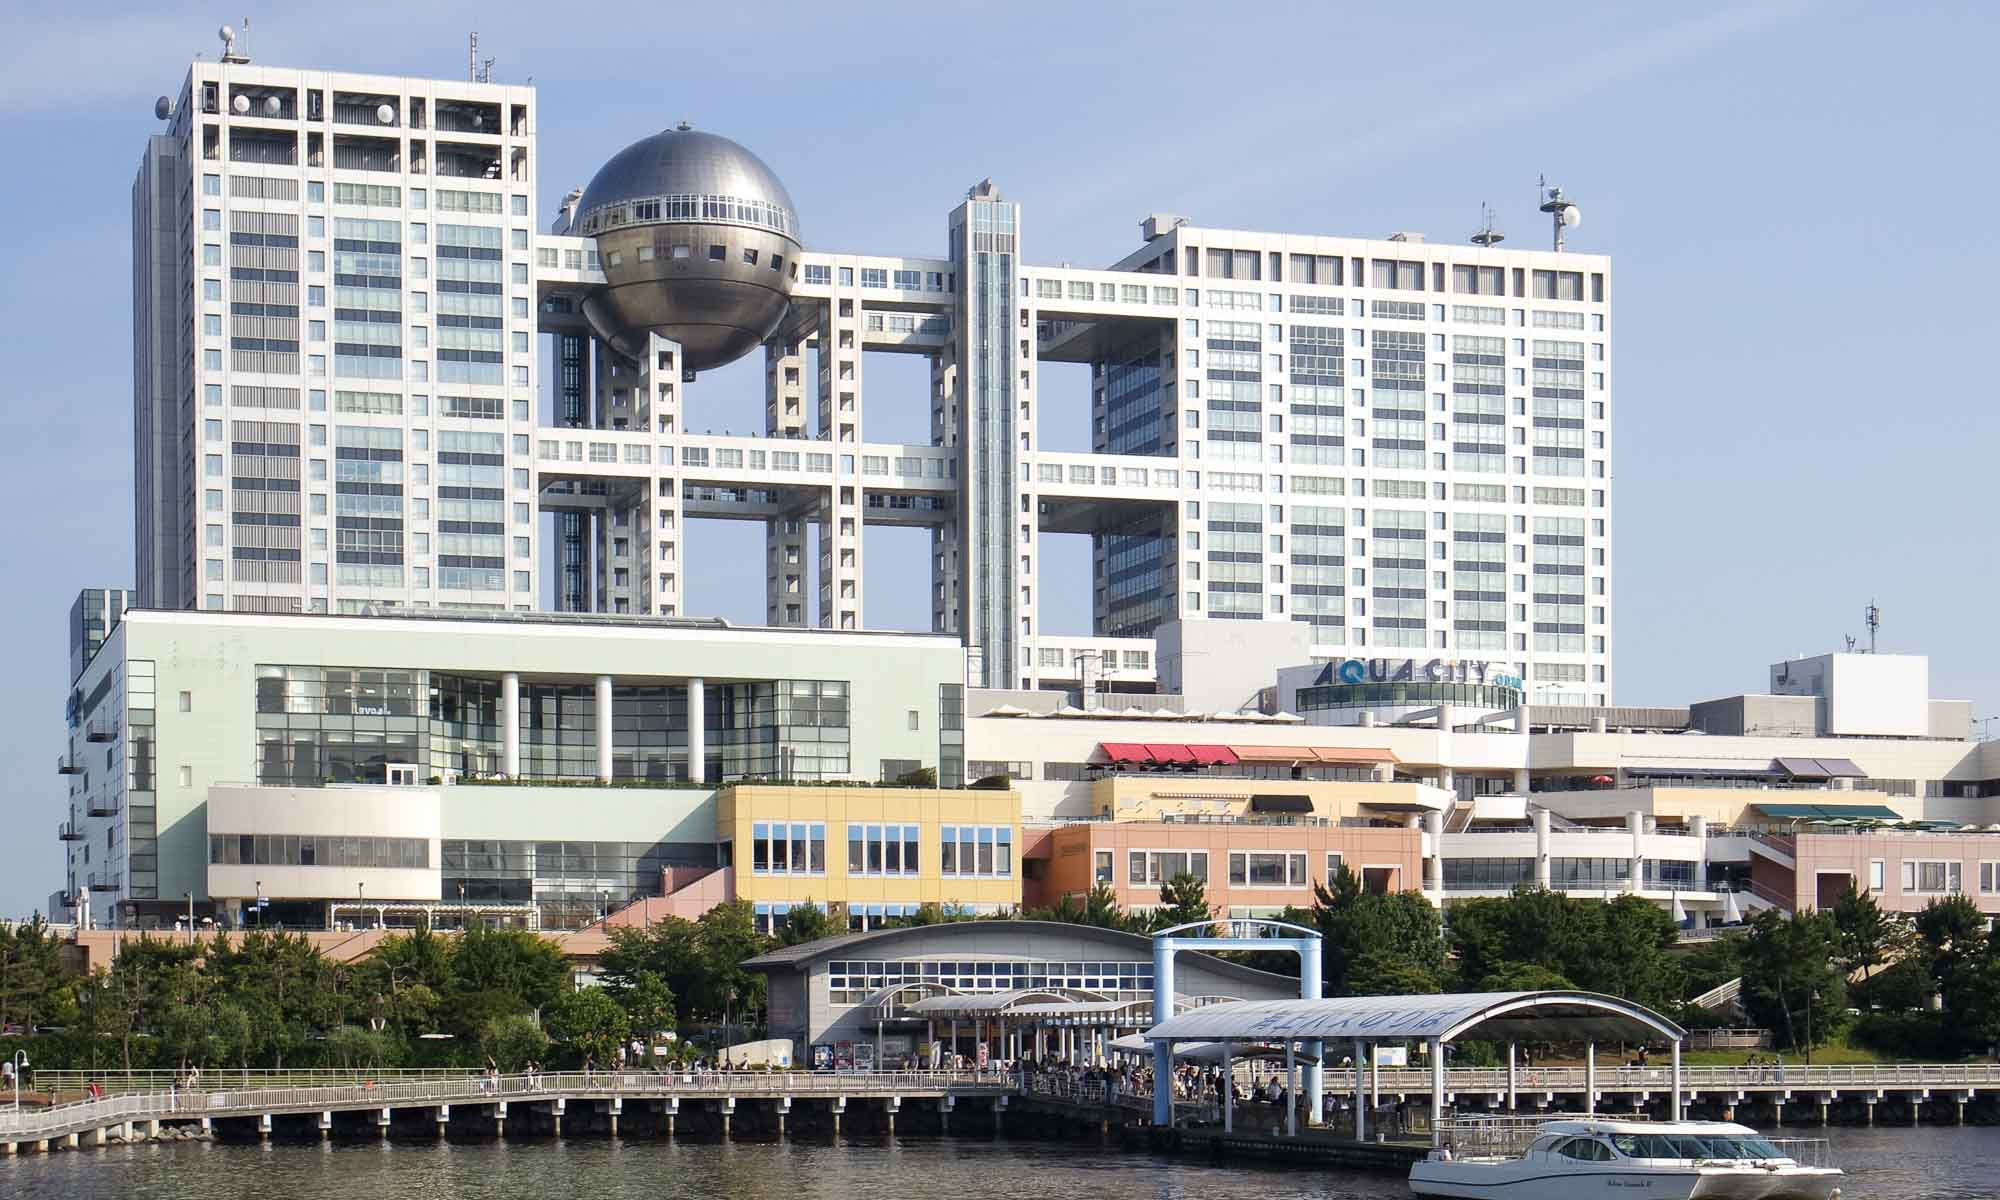 Fuji Television HQ seen from the water